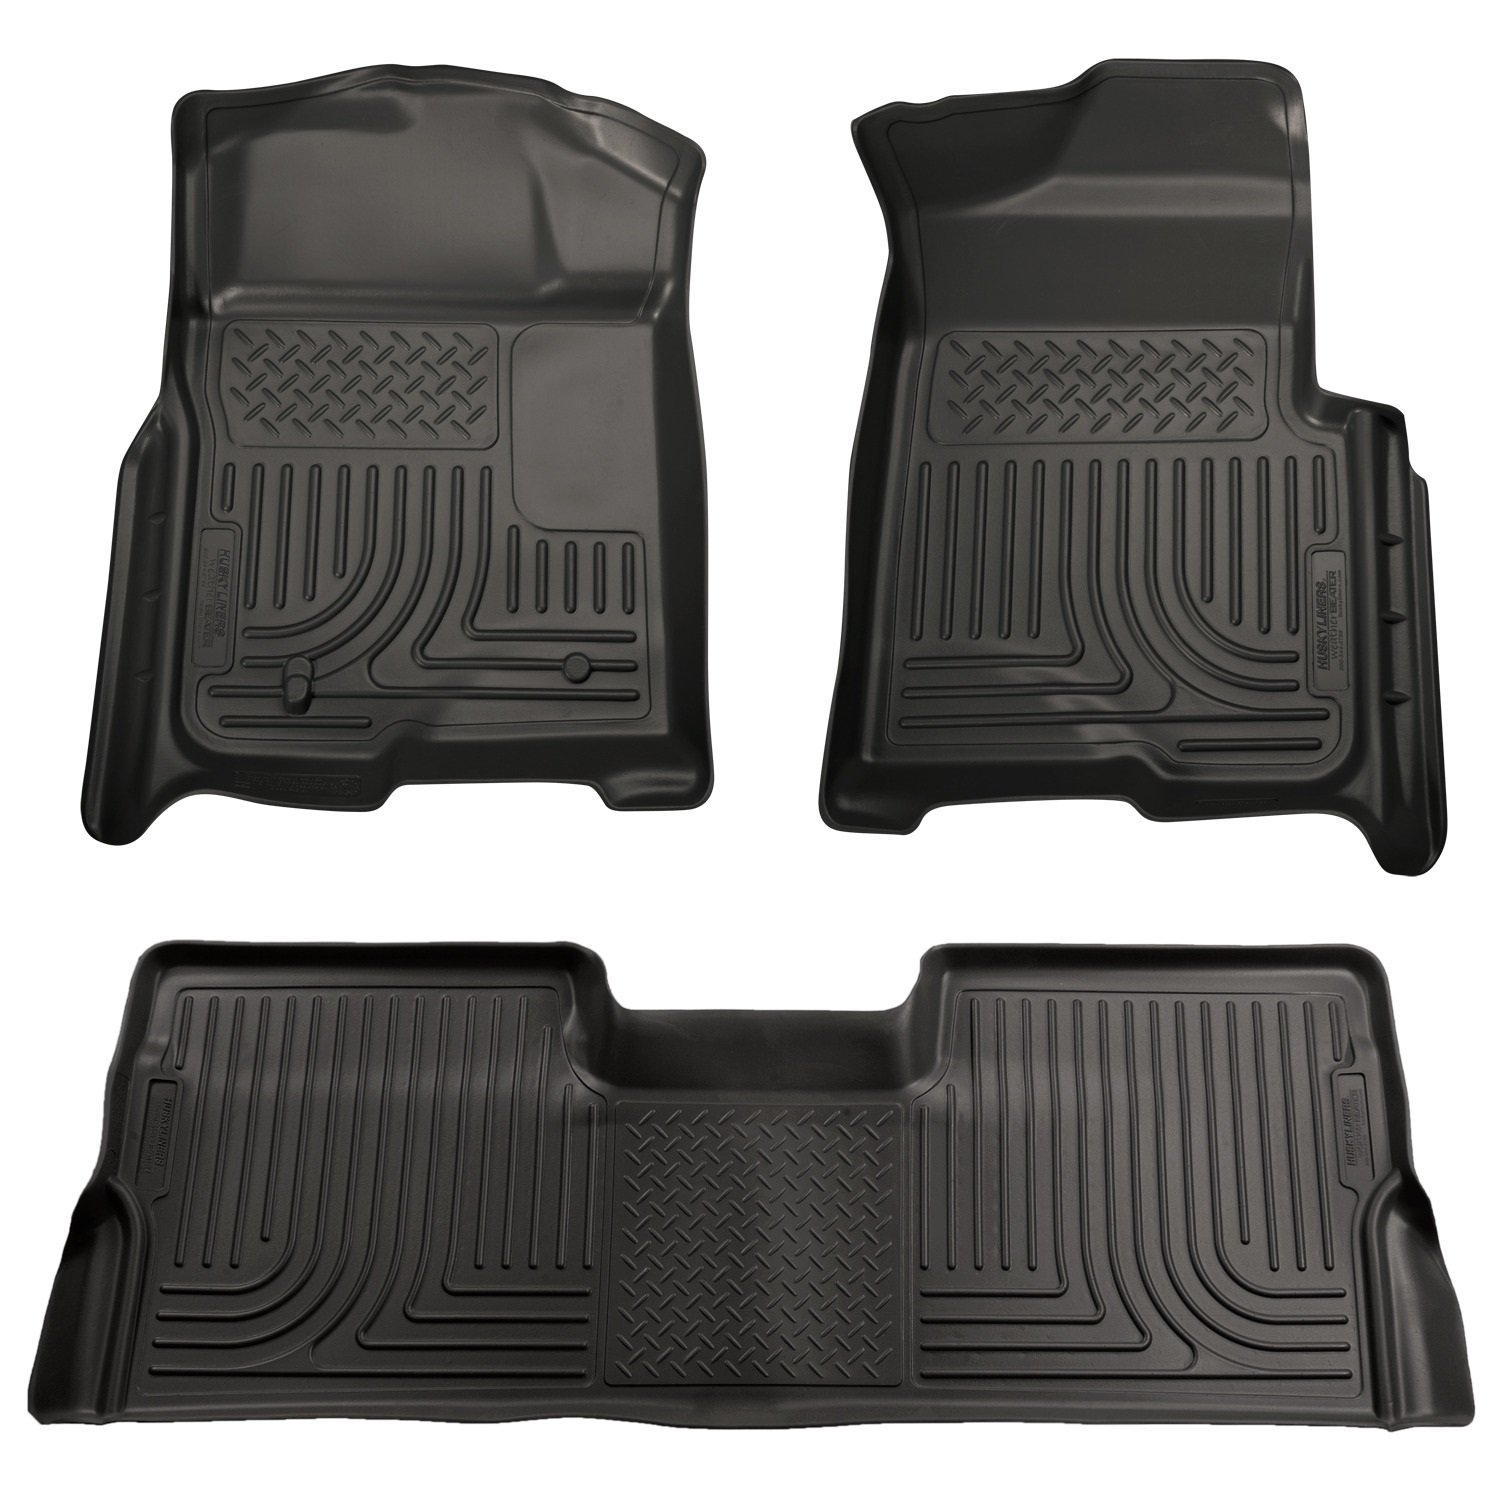 Weathertech floor mats alternative - Amazon Com Husky Liners Front 2nd Seat Floor Liners Footwell Coverage Fits 09 15 Pilot Automotive